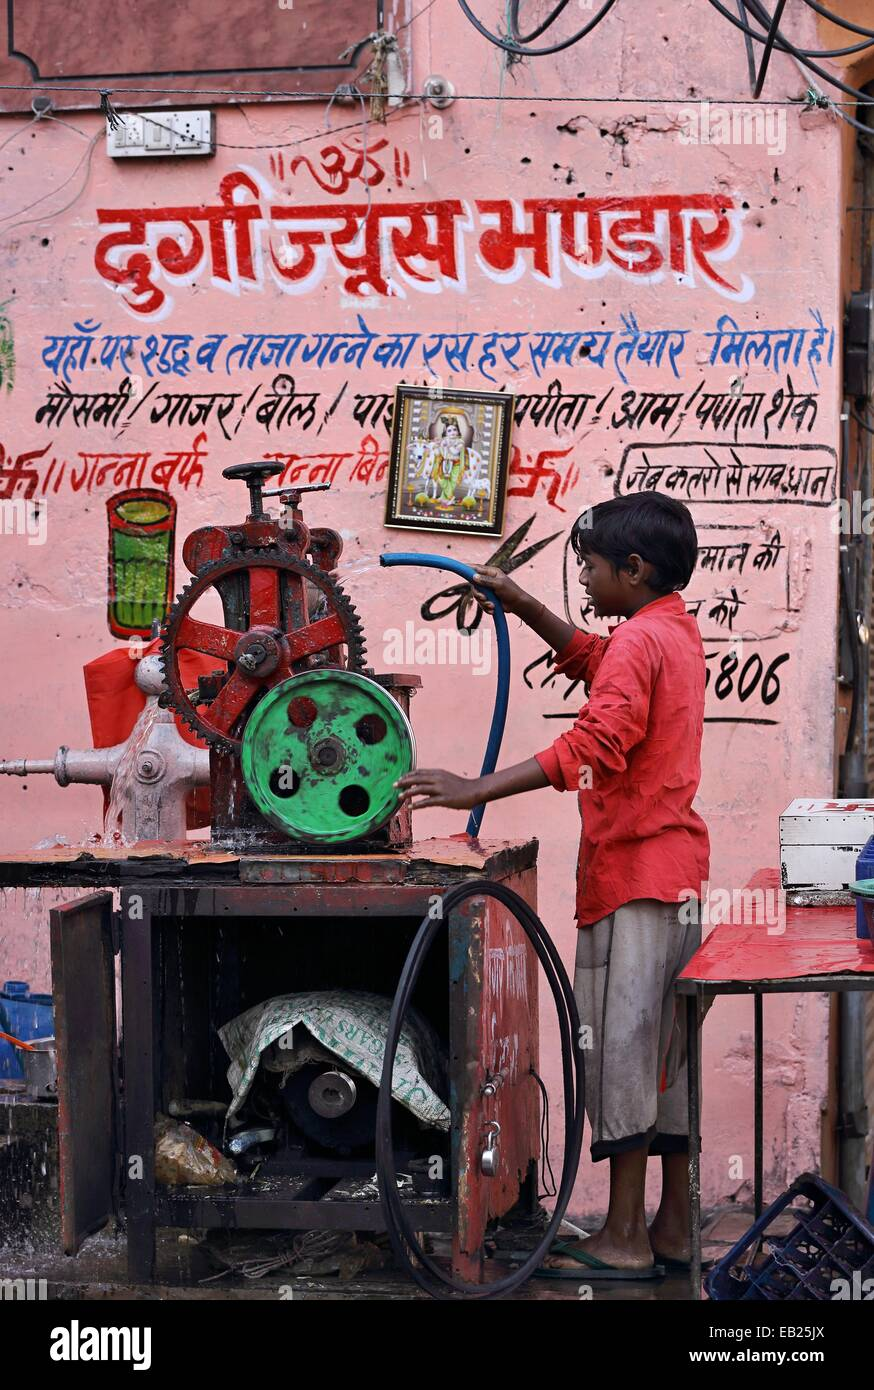 Young Indian boy cleaning a sugarcane juice machine India - Stock Image